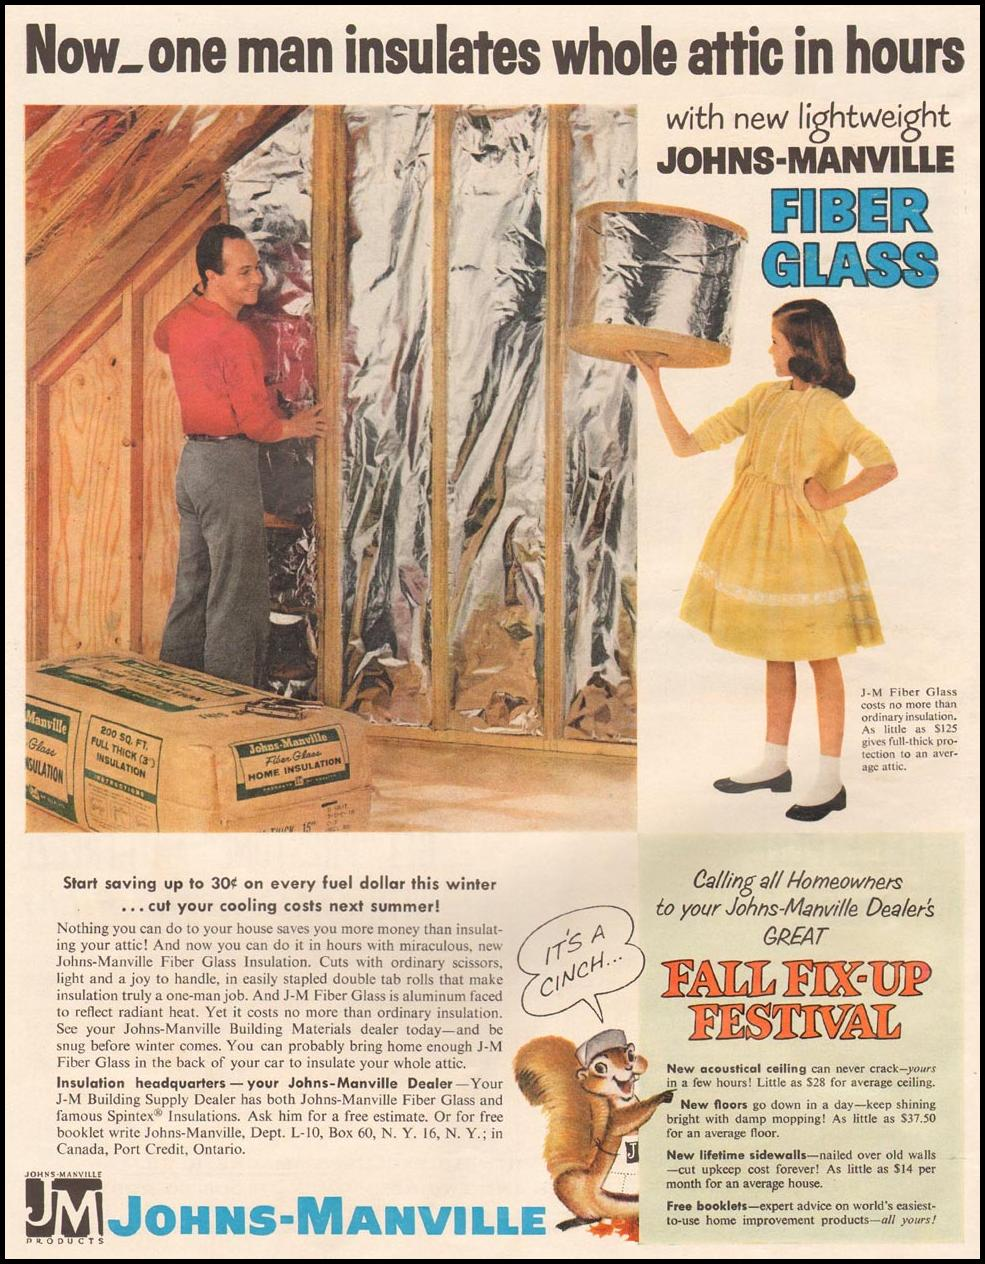 JOHNS-MANVILLE FIBER GLASS INSULATION LIFE 10/05/1959